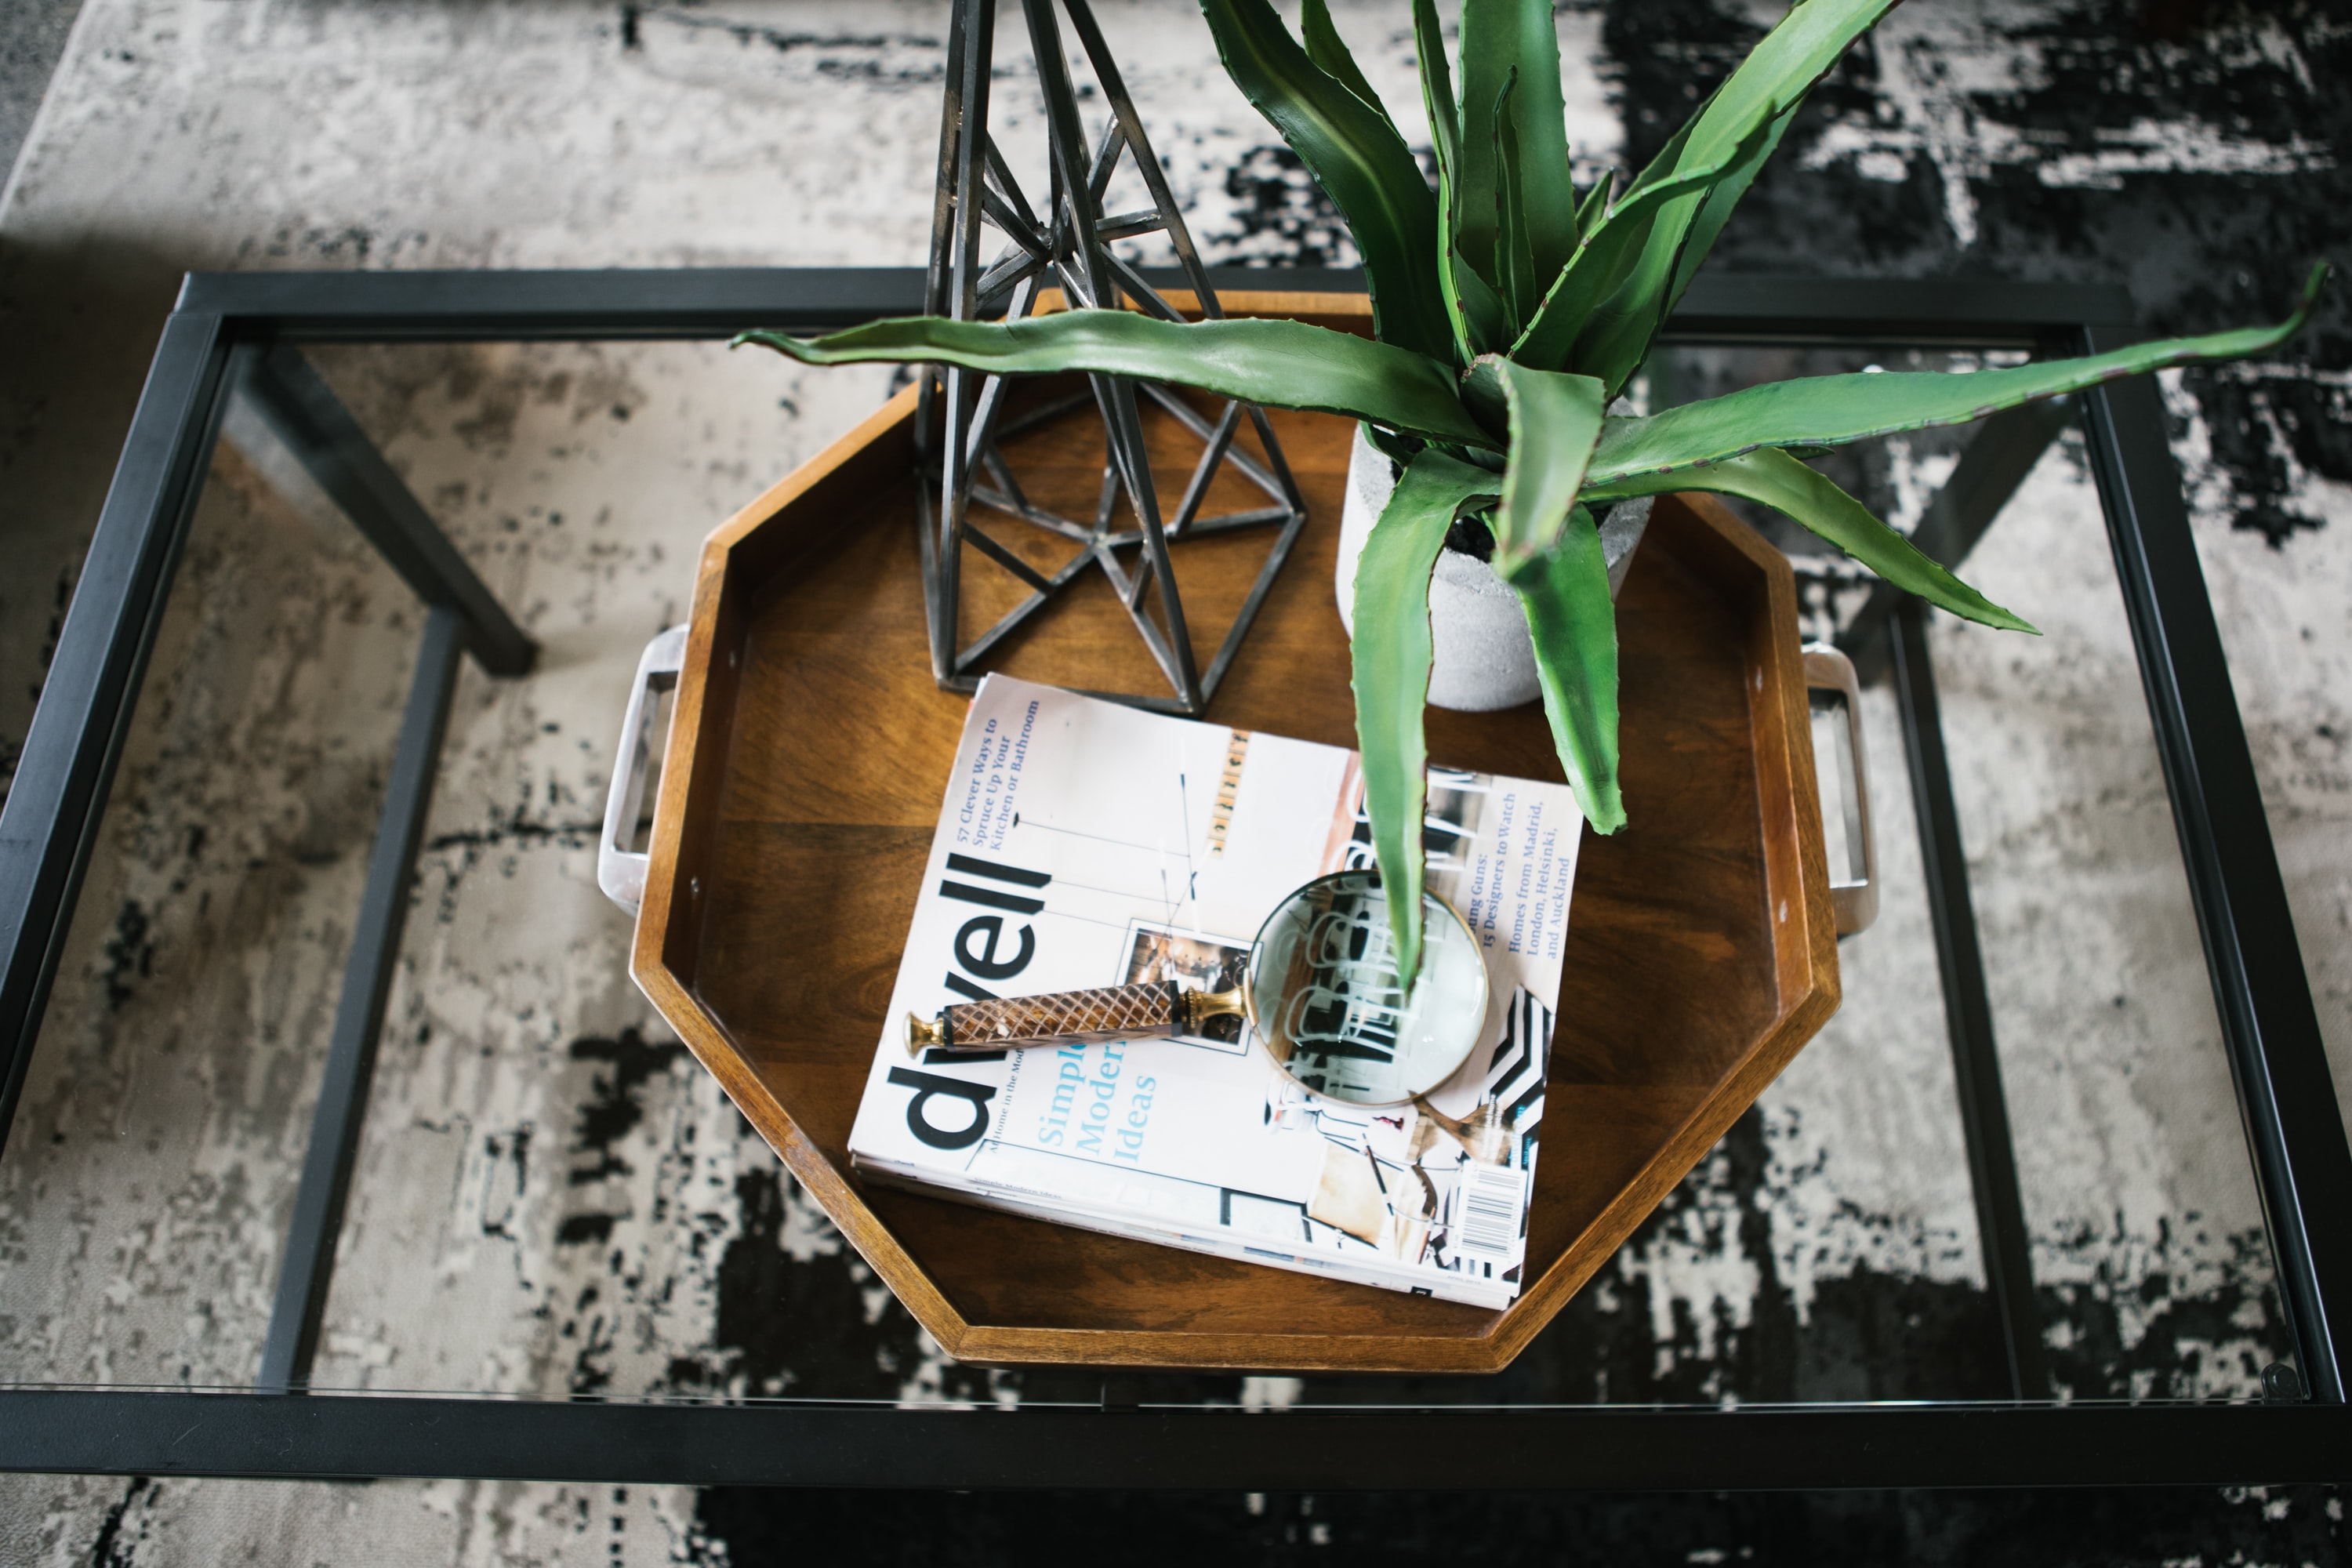 A tray, magazine, magnifying glass, aloe plant, and sculpture on a glass table in Portland